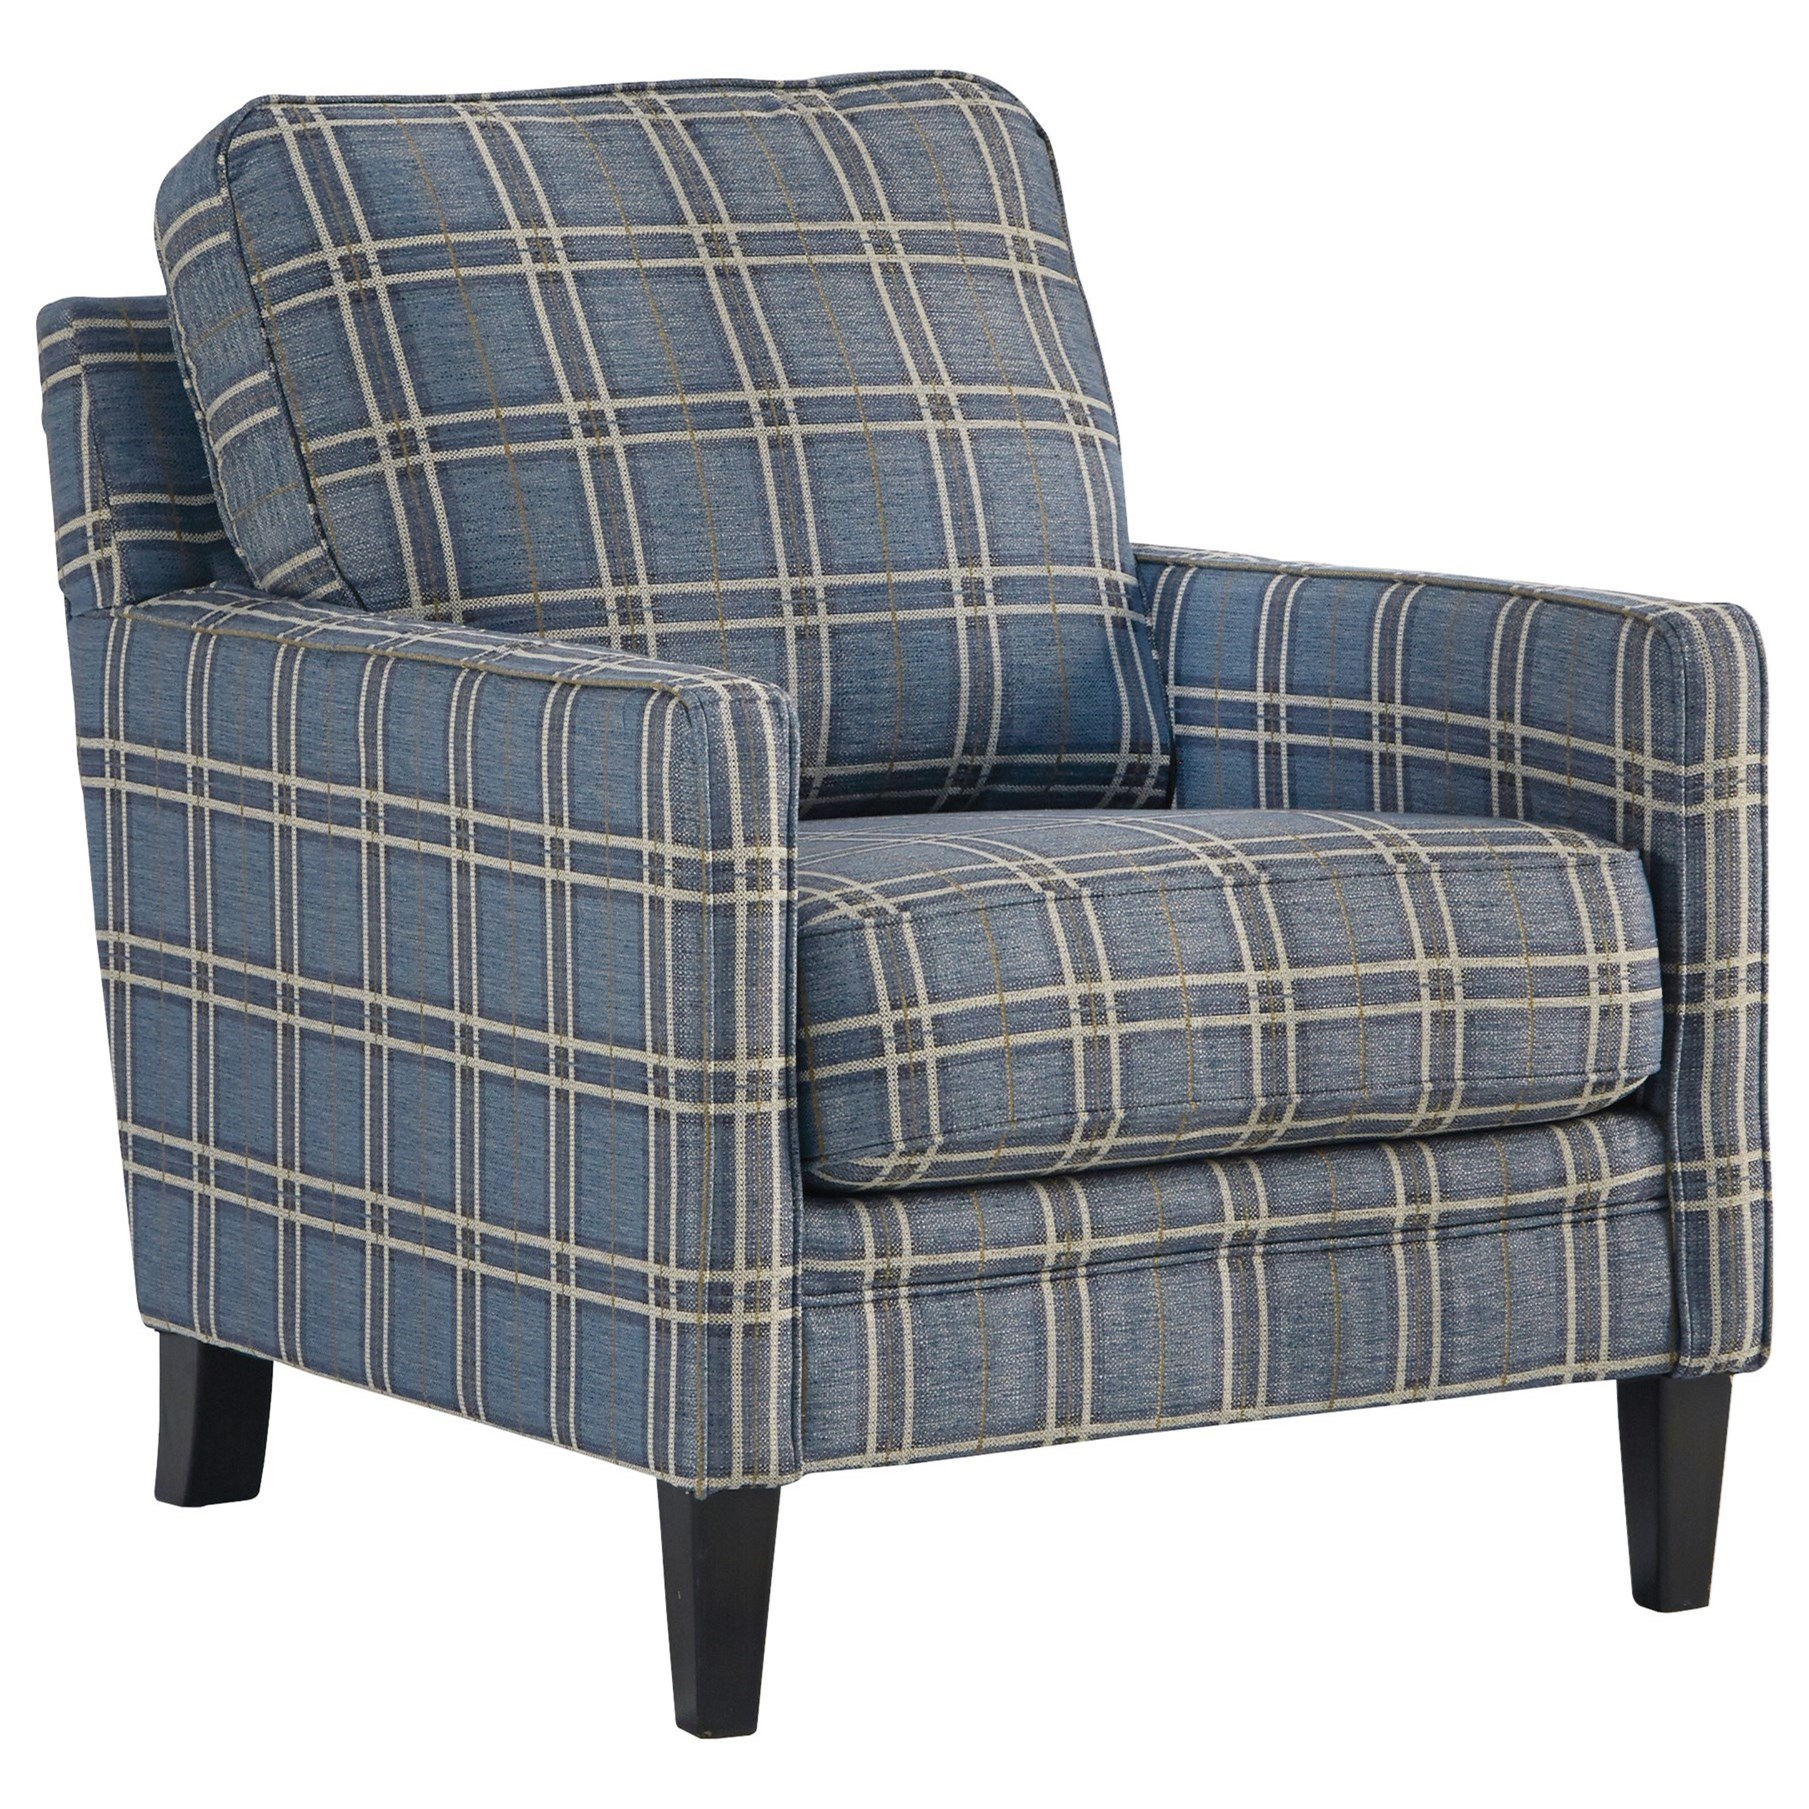 Traemore Accent Chair by Benchcraft at Value City Furniture